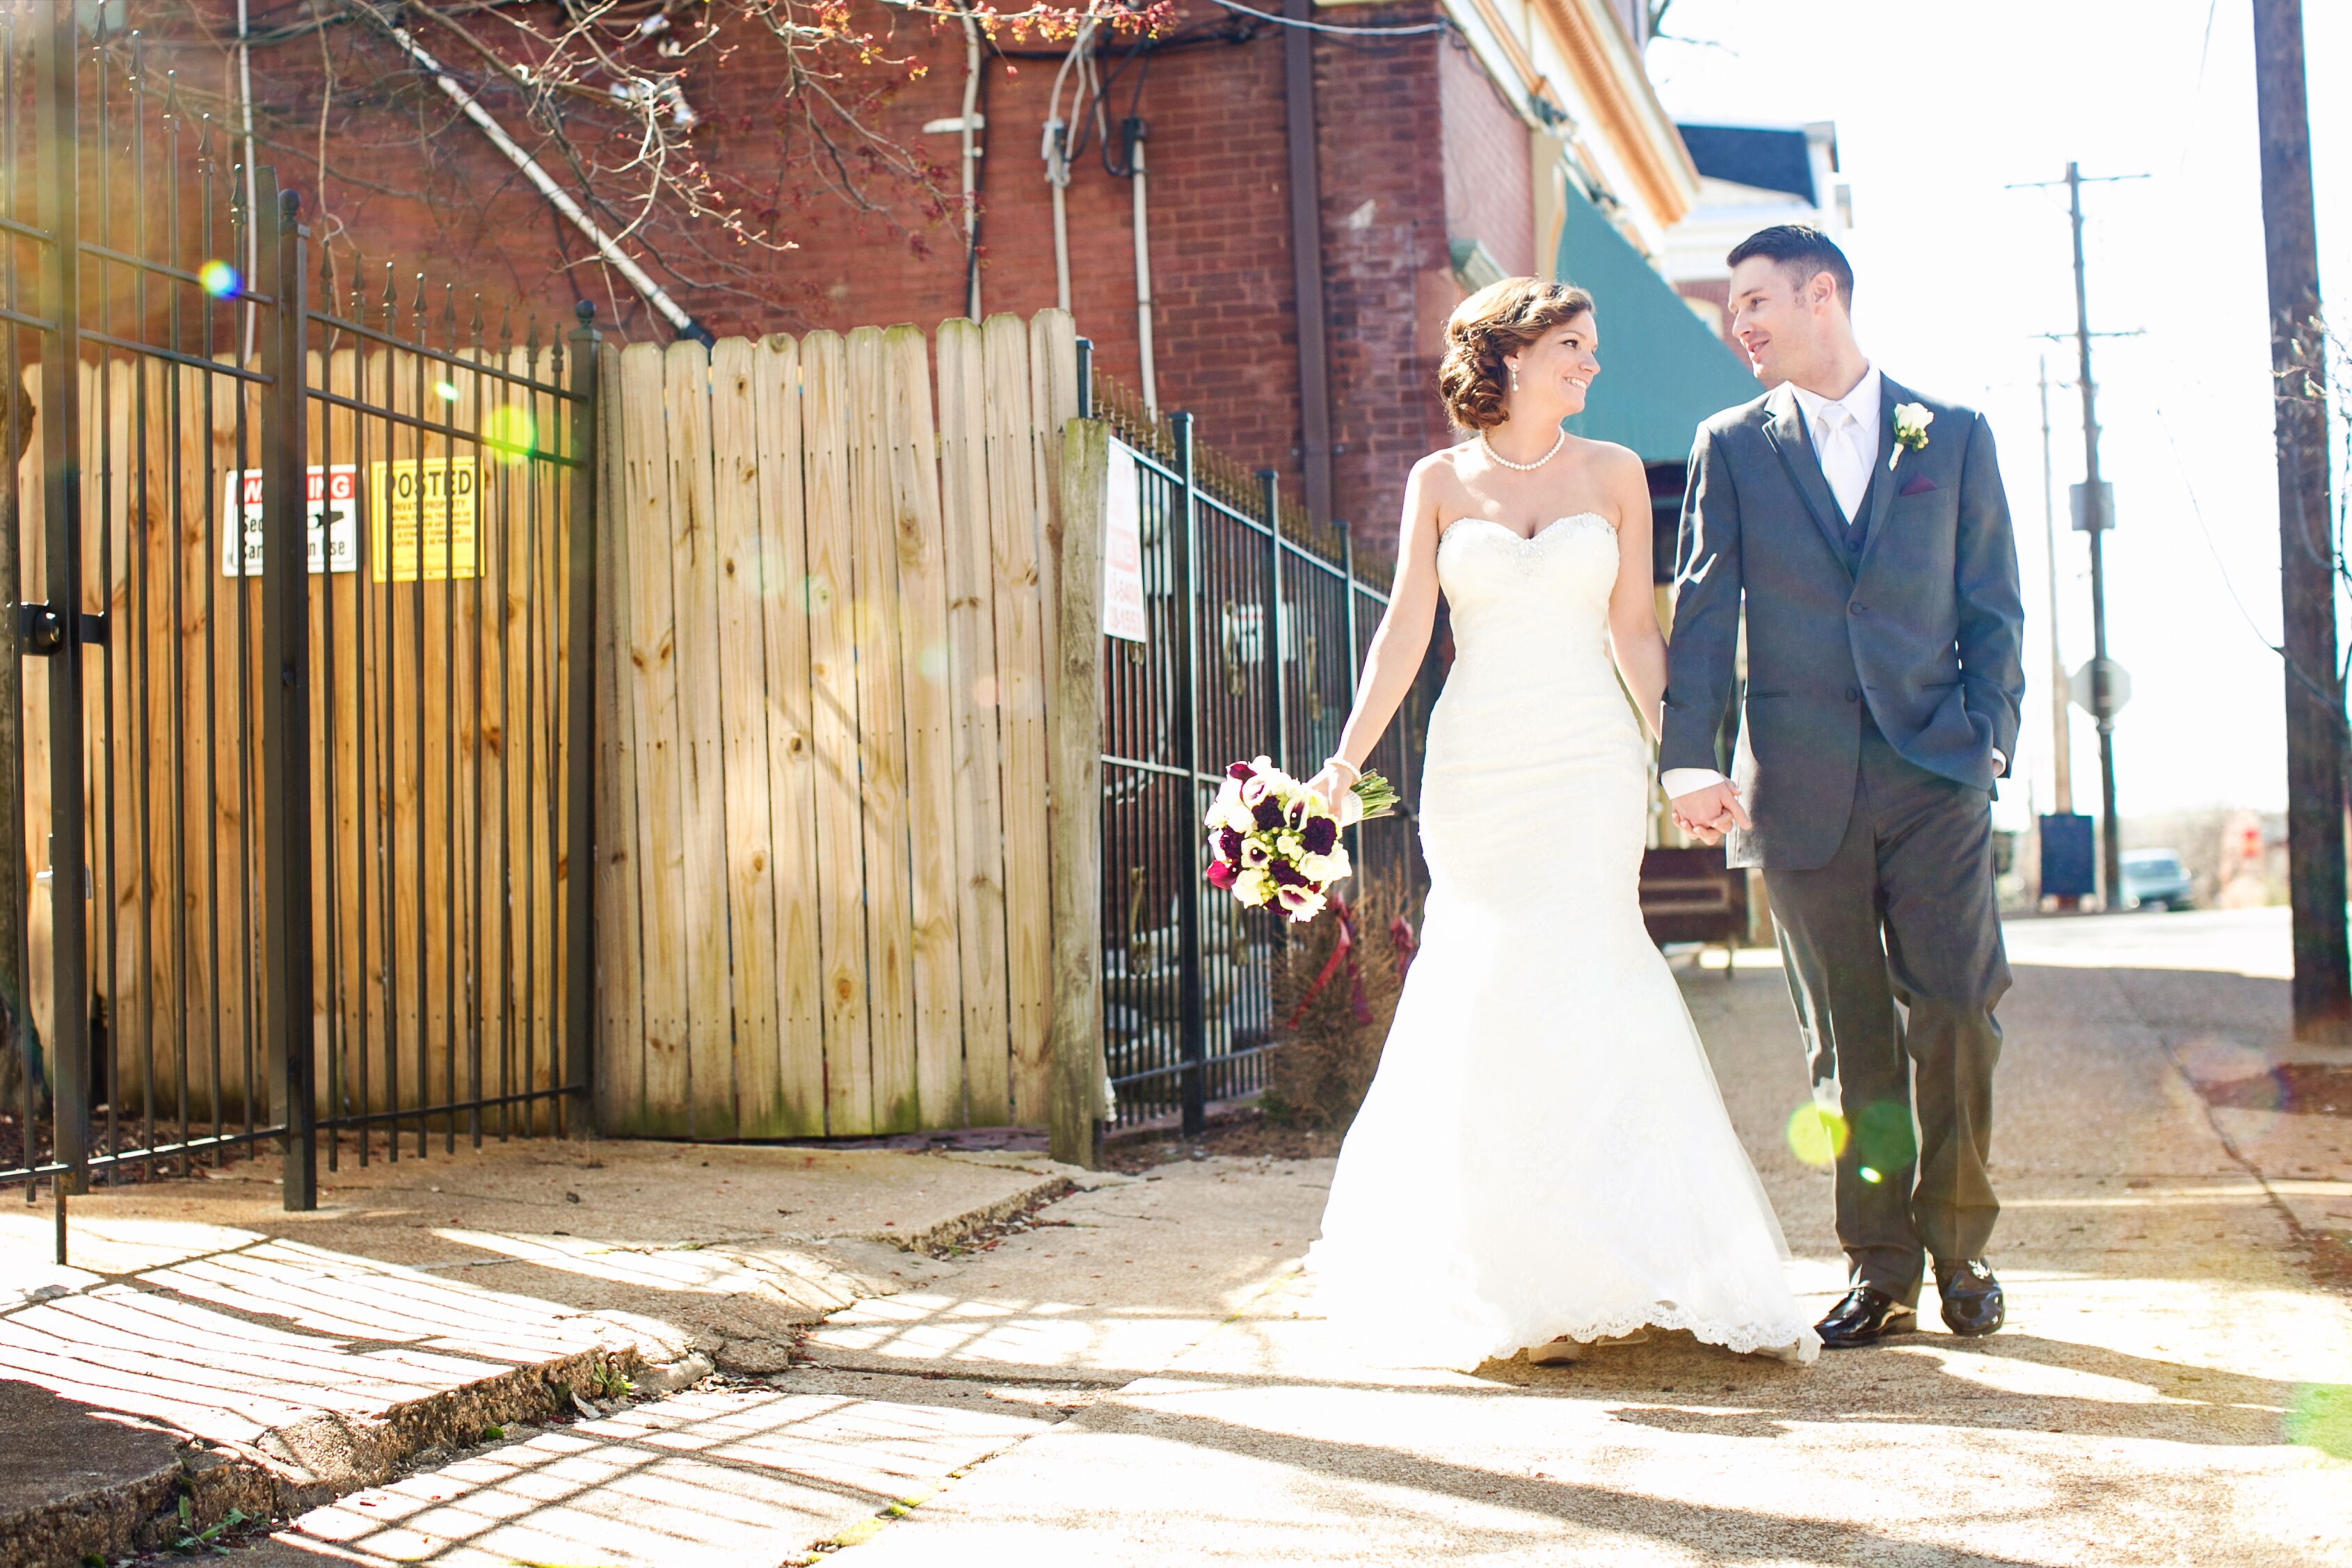 An Elegant Classic Wedding At The Heart Of St Charles In